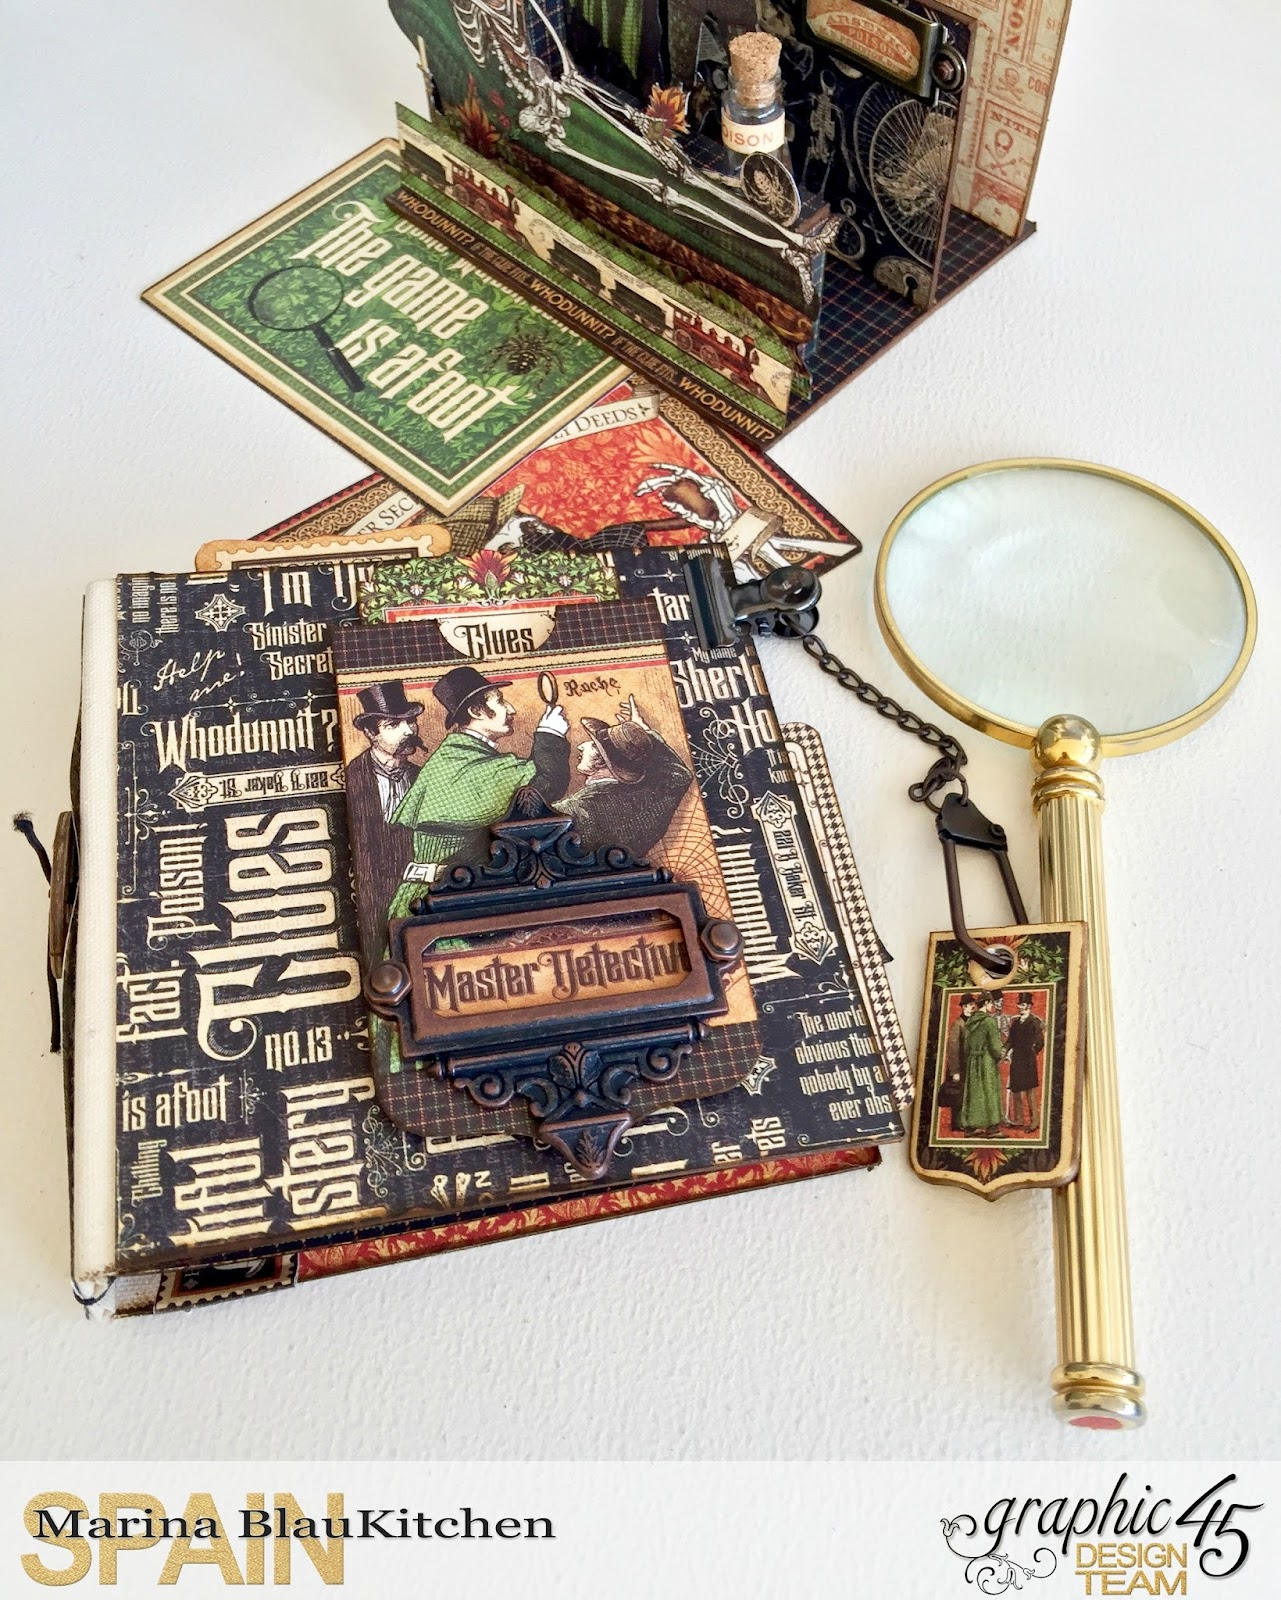 Stand and Mini Album Master Detective by Marina Blaukitchen Product by Graphic 45 photo 7.jpg